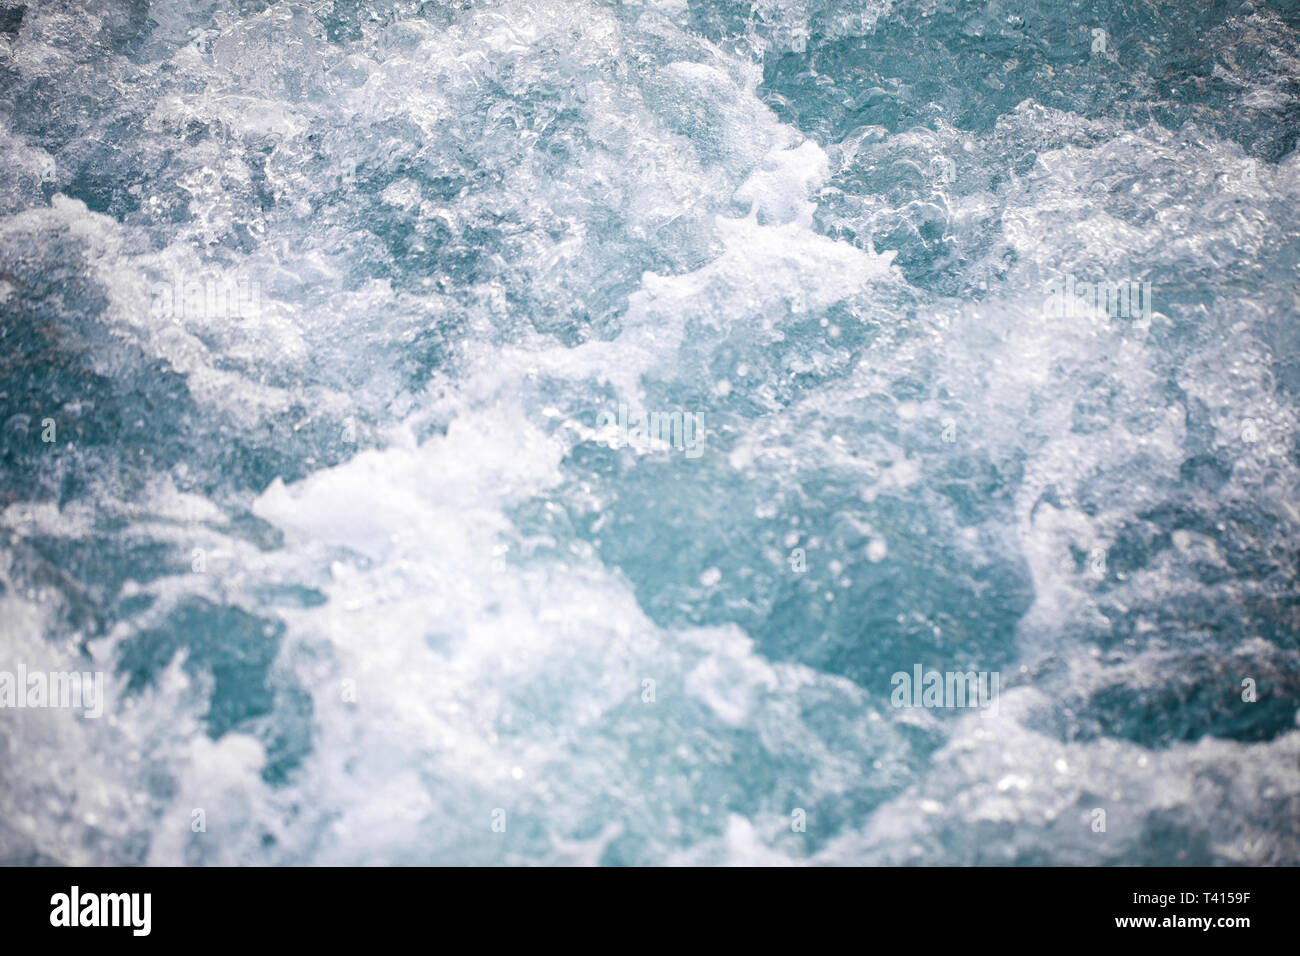 Troubled, blurred water. Ocean waves - bright turquoise colors, - Stock Image